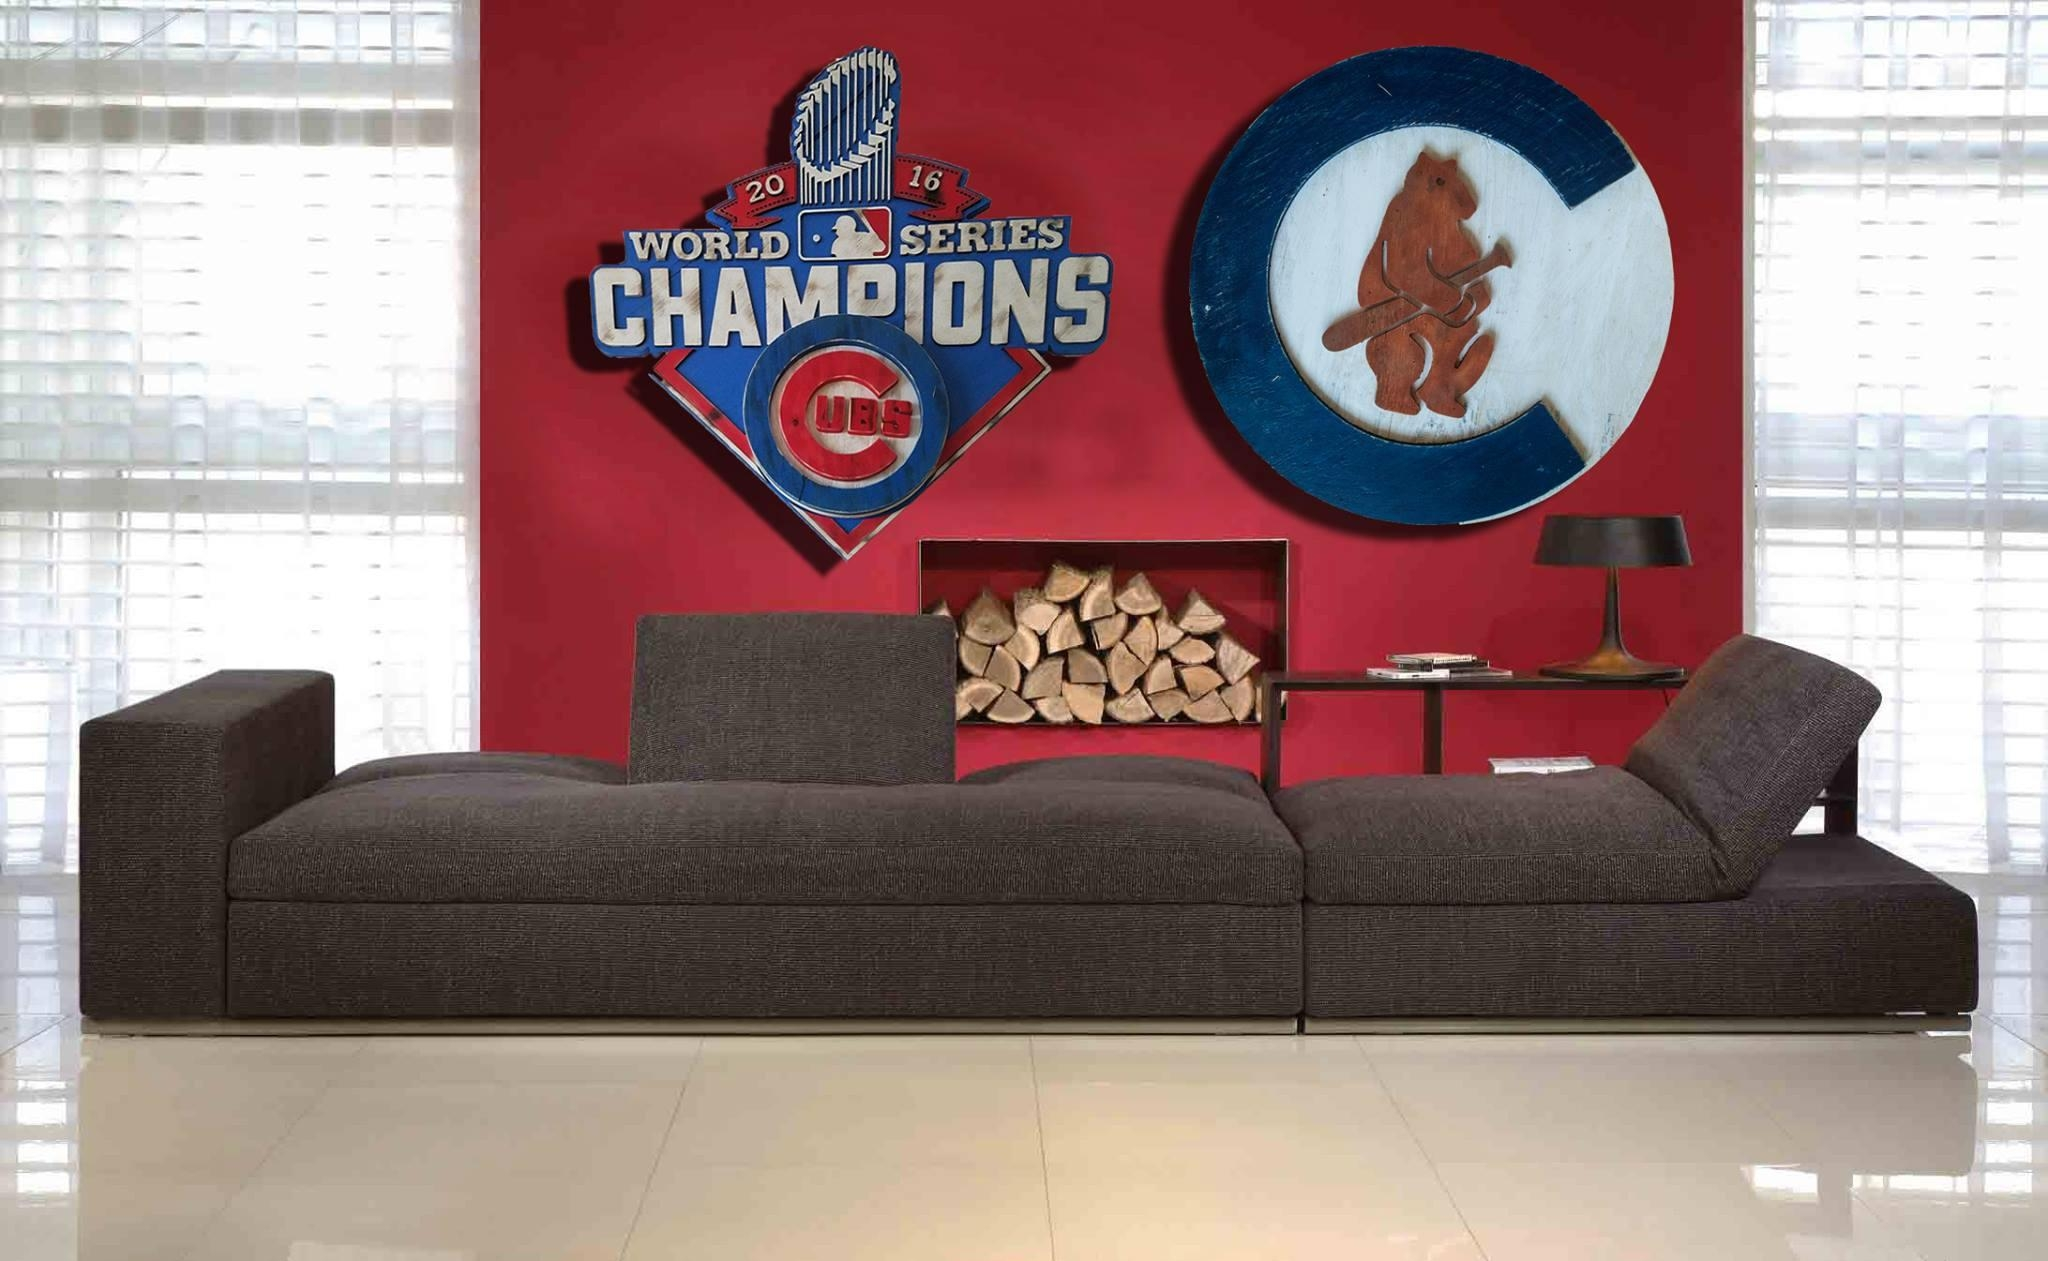 Chicago Cubs 1908 Logo Handmade Distressed Wood Sign, Vintage, Art Regarding Chicago Cubs Wall Art (View 14 of 20)